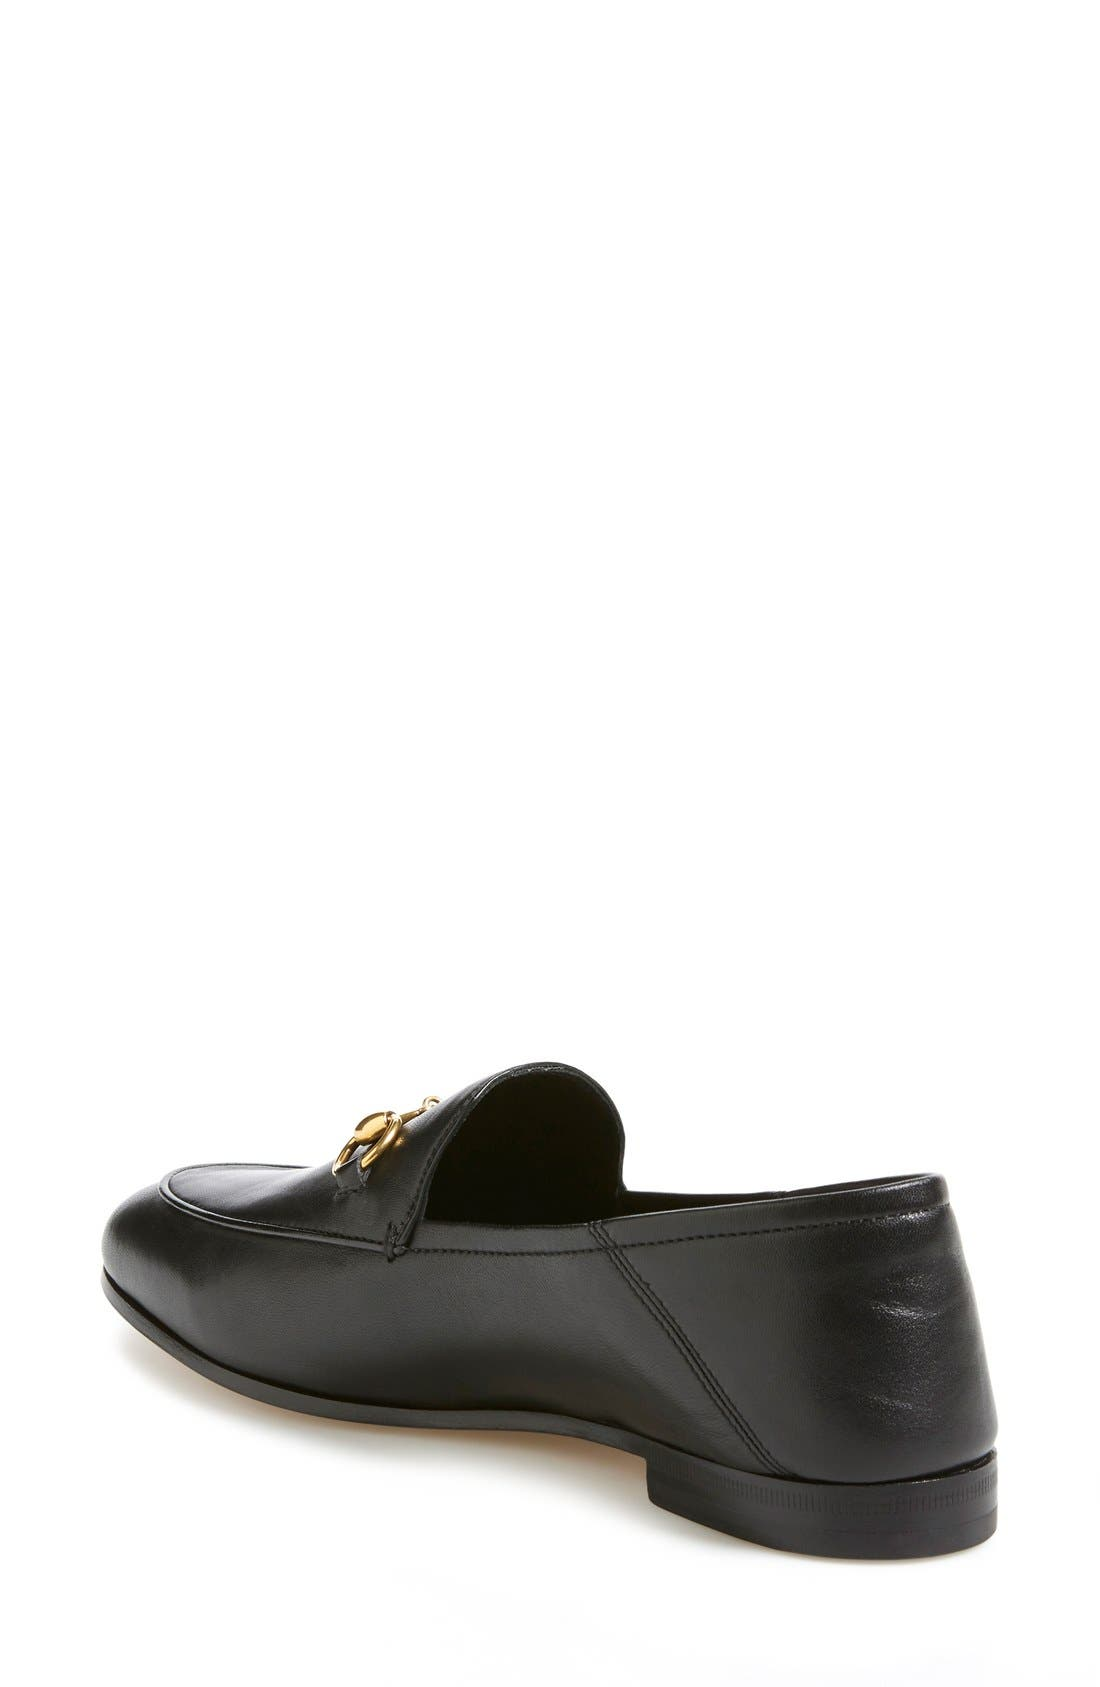 Alternate Image 2  - Gucci Brixton Convertible Loafer (Women)